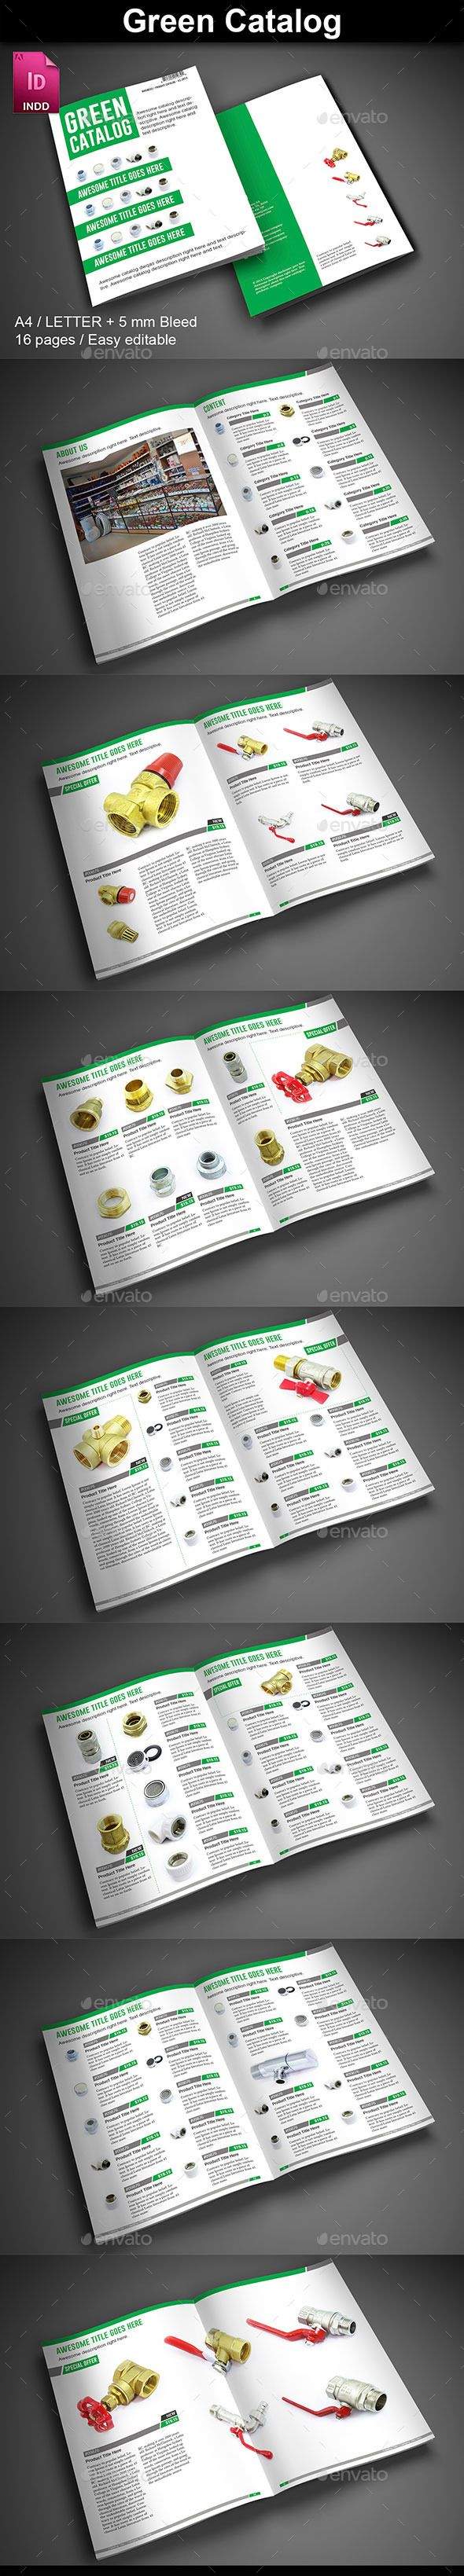 Green Catalog Template #design Download: http://graphicriver.net/item/green-catalog/12587206?ref=ksioks